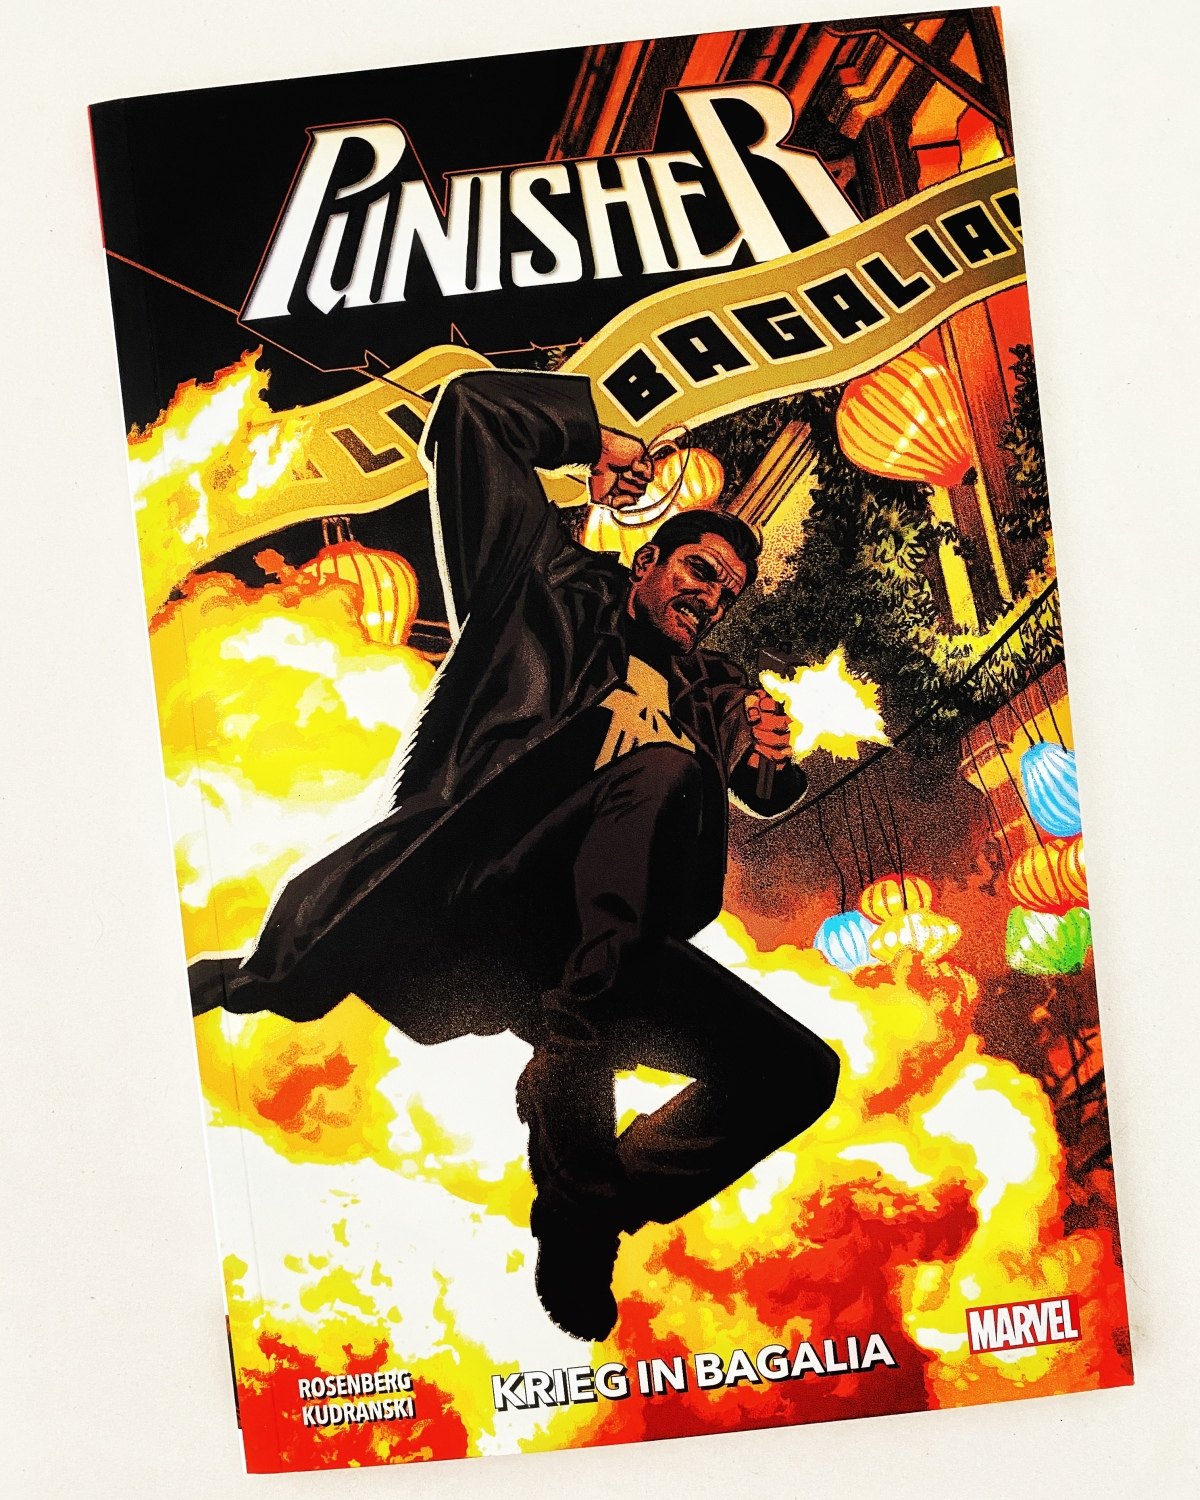 Punisher Band 2: Krieg in Bagalia |Review